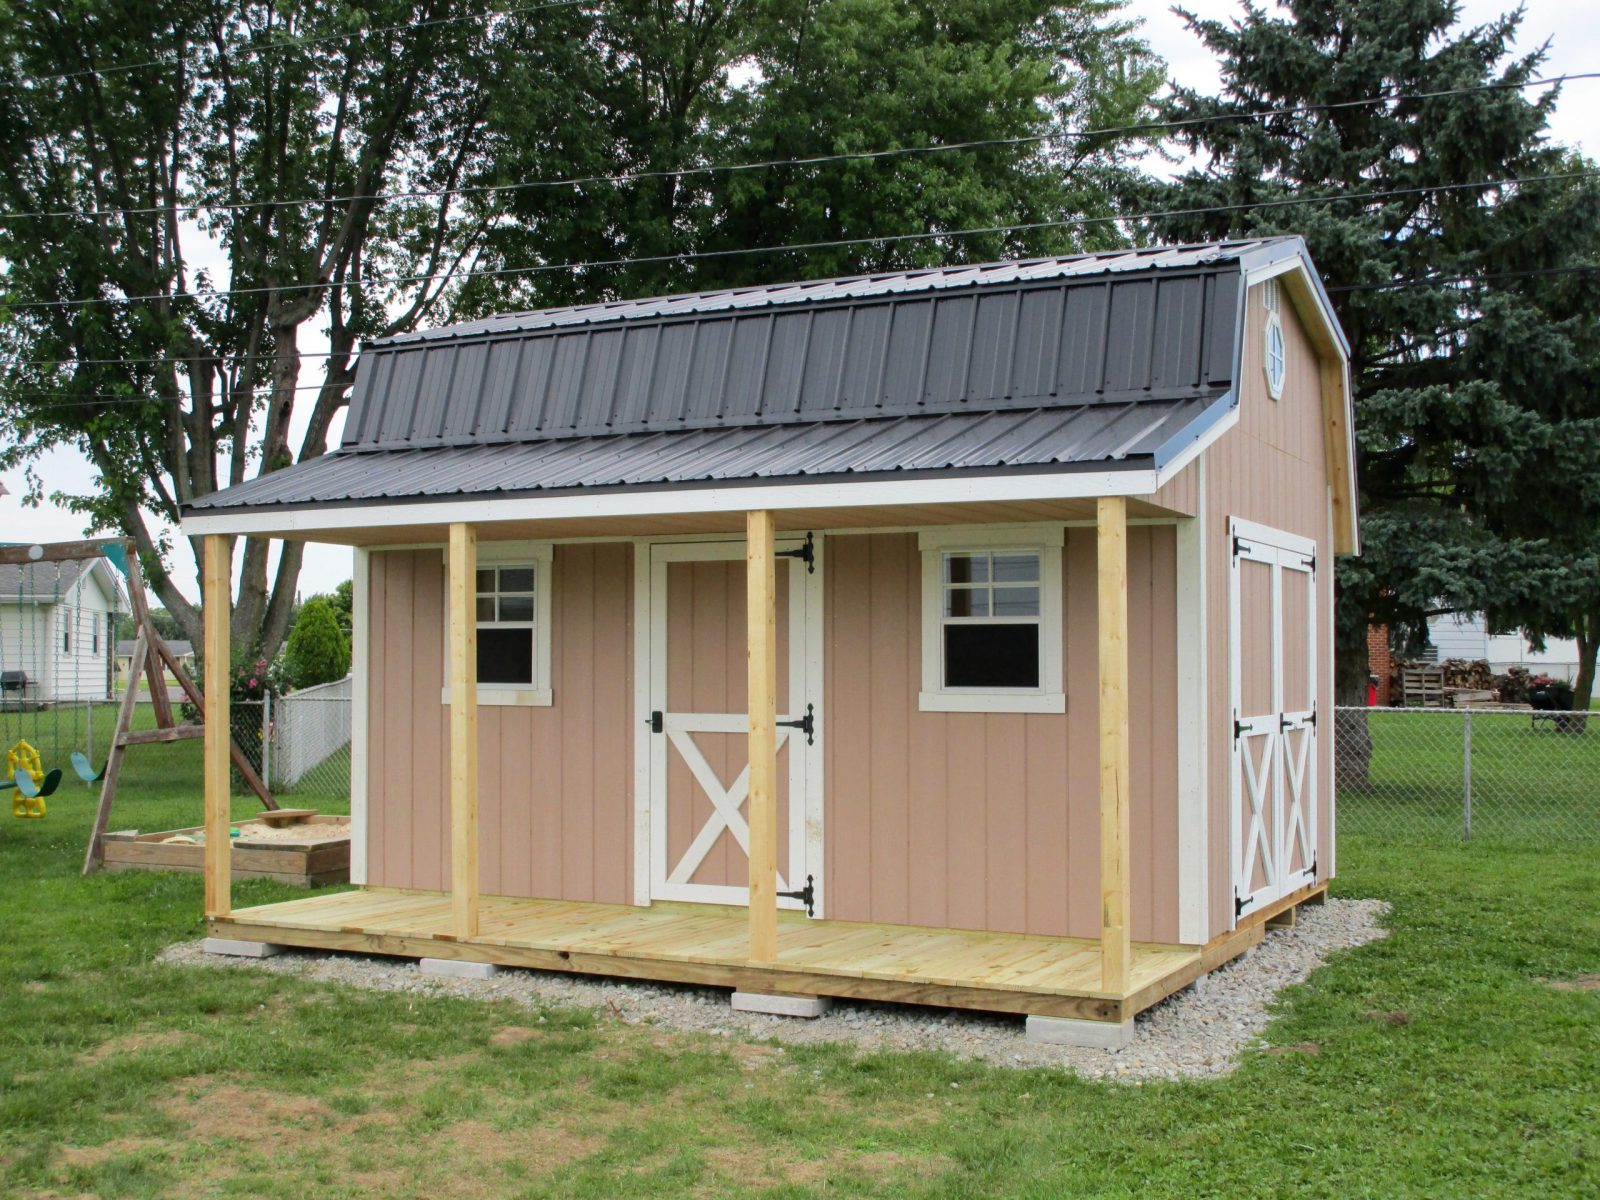 retreat style garden shed for sale in central ohio